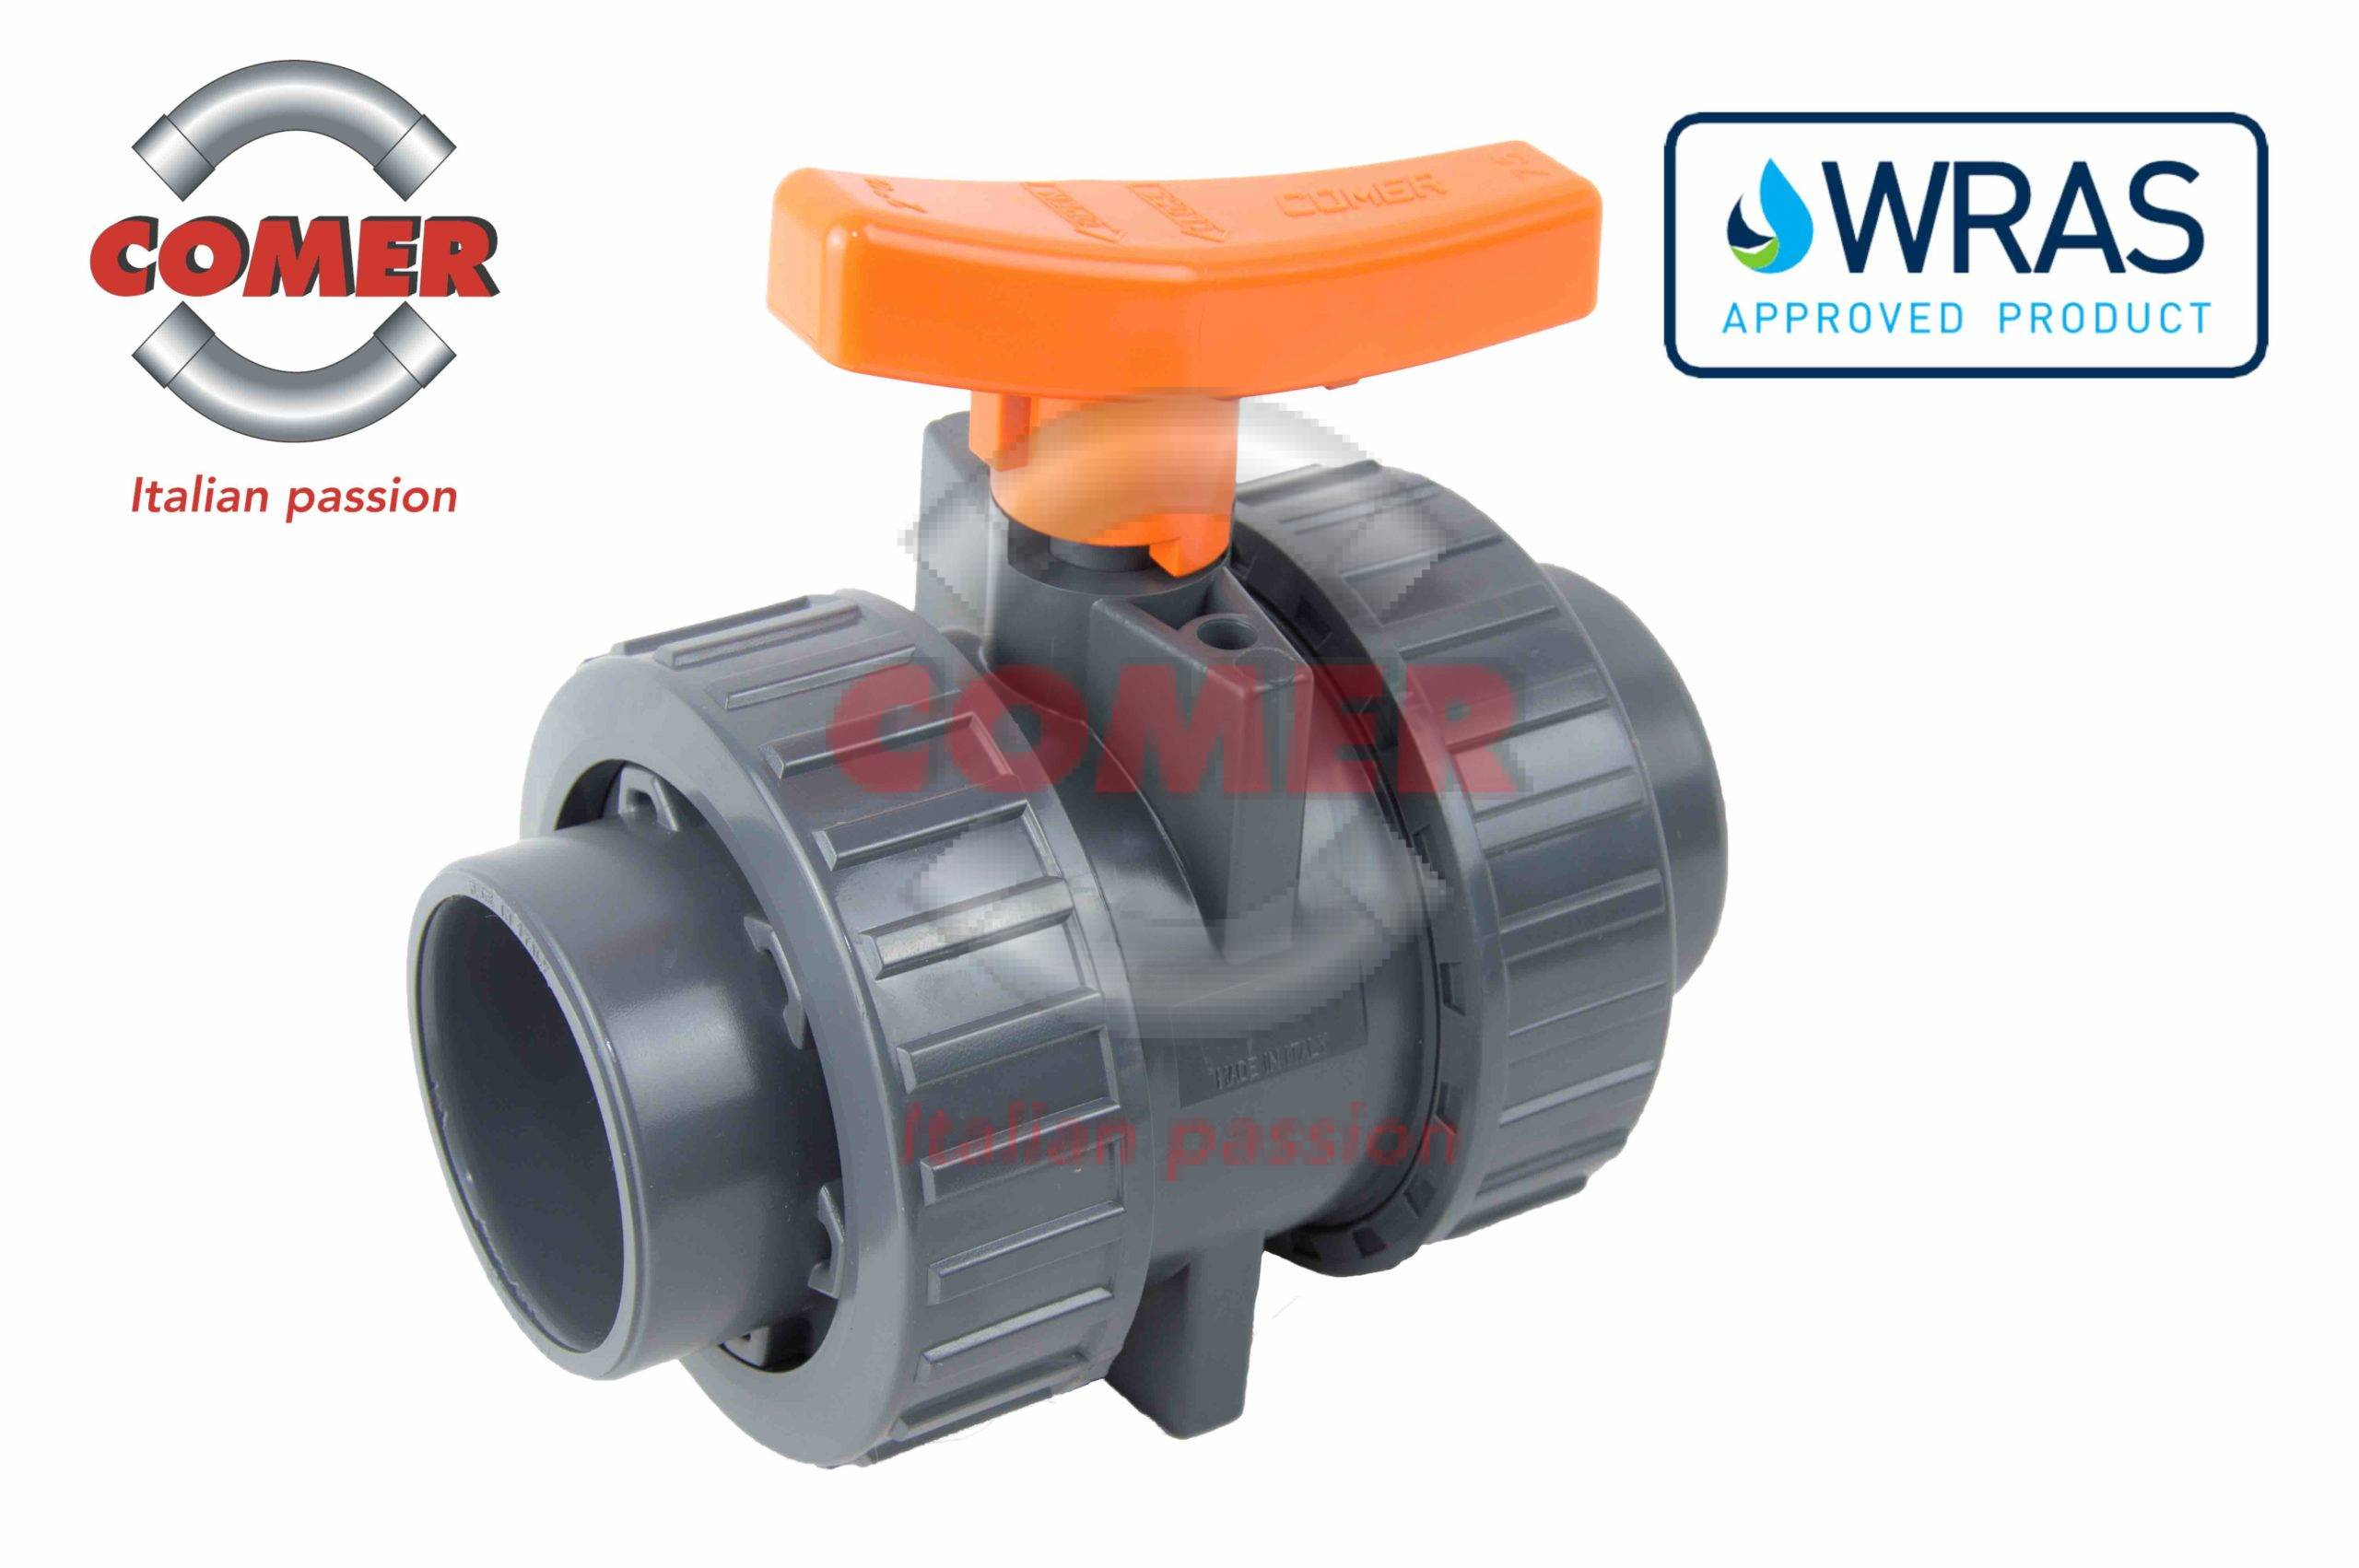 WRAS product approval industrial ball valve COMER S.p.A. - COMER S.p.A.